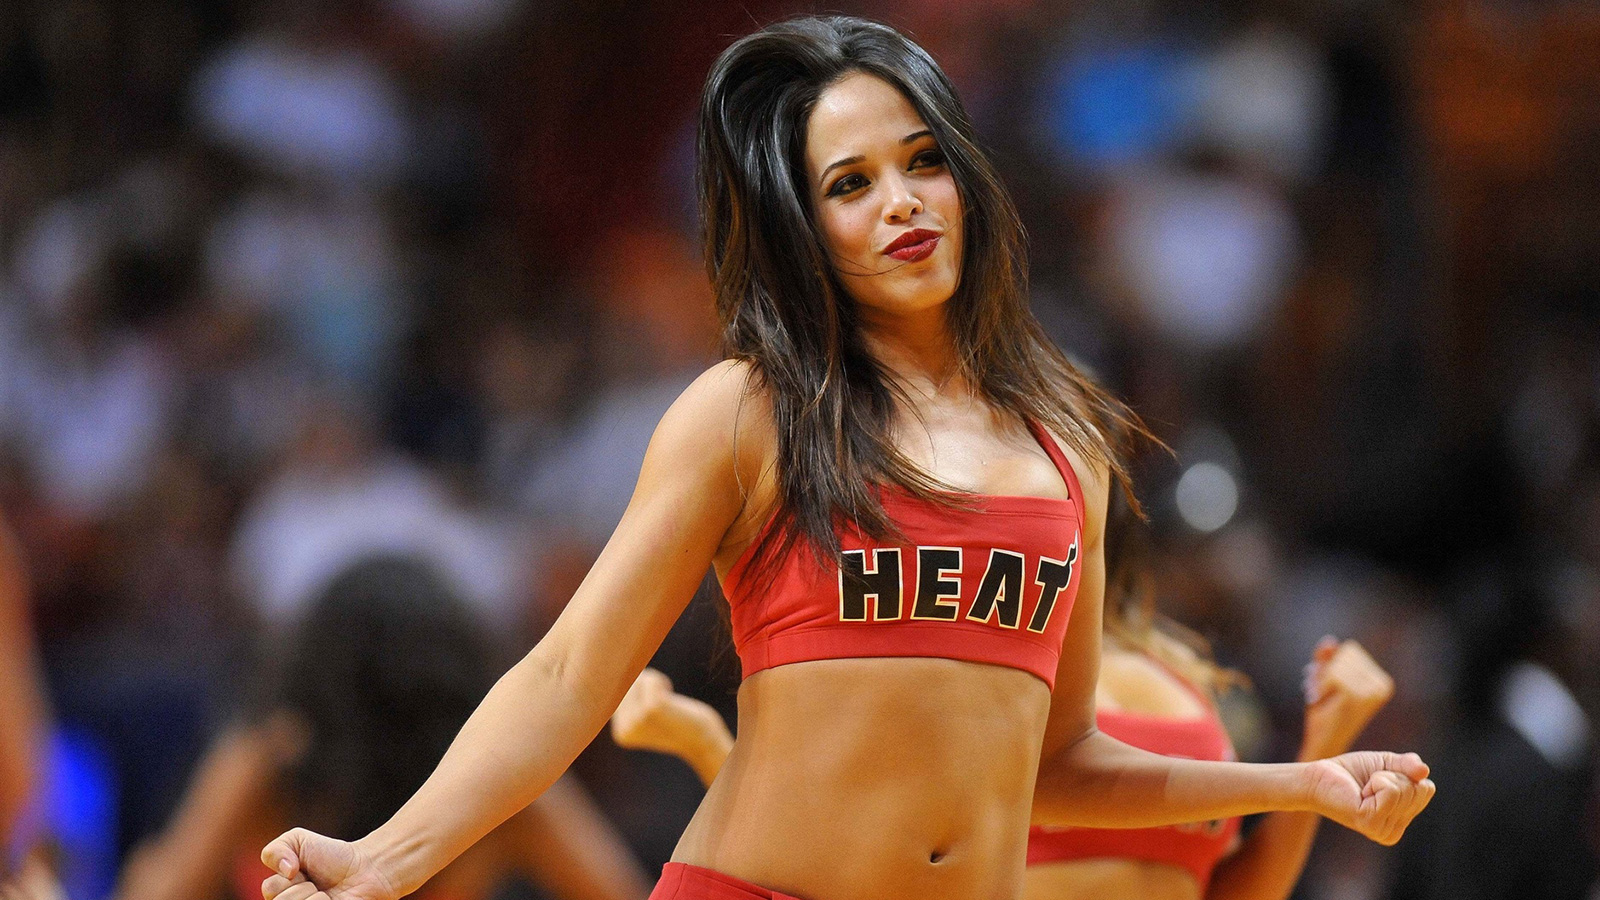 heat_cheerleader_G4